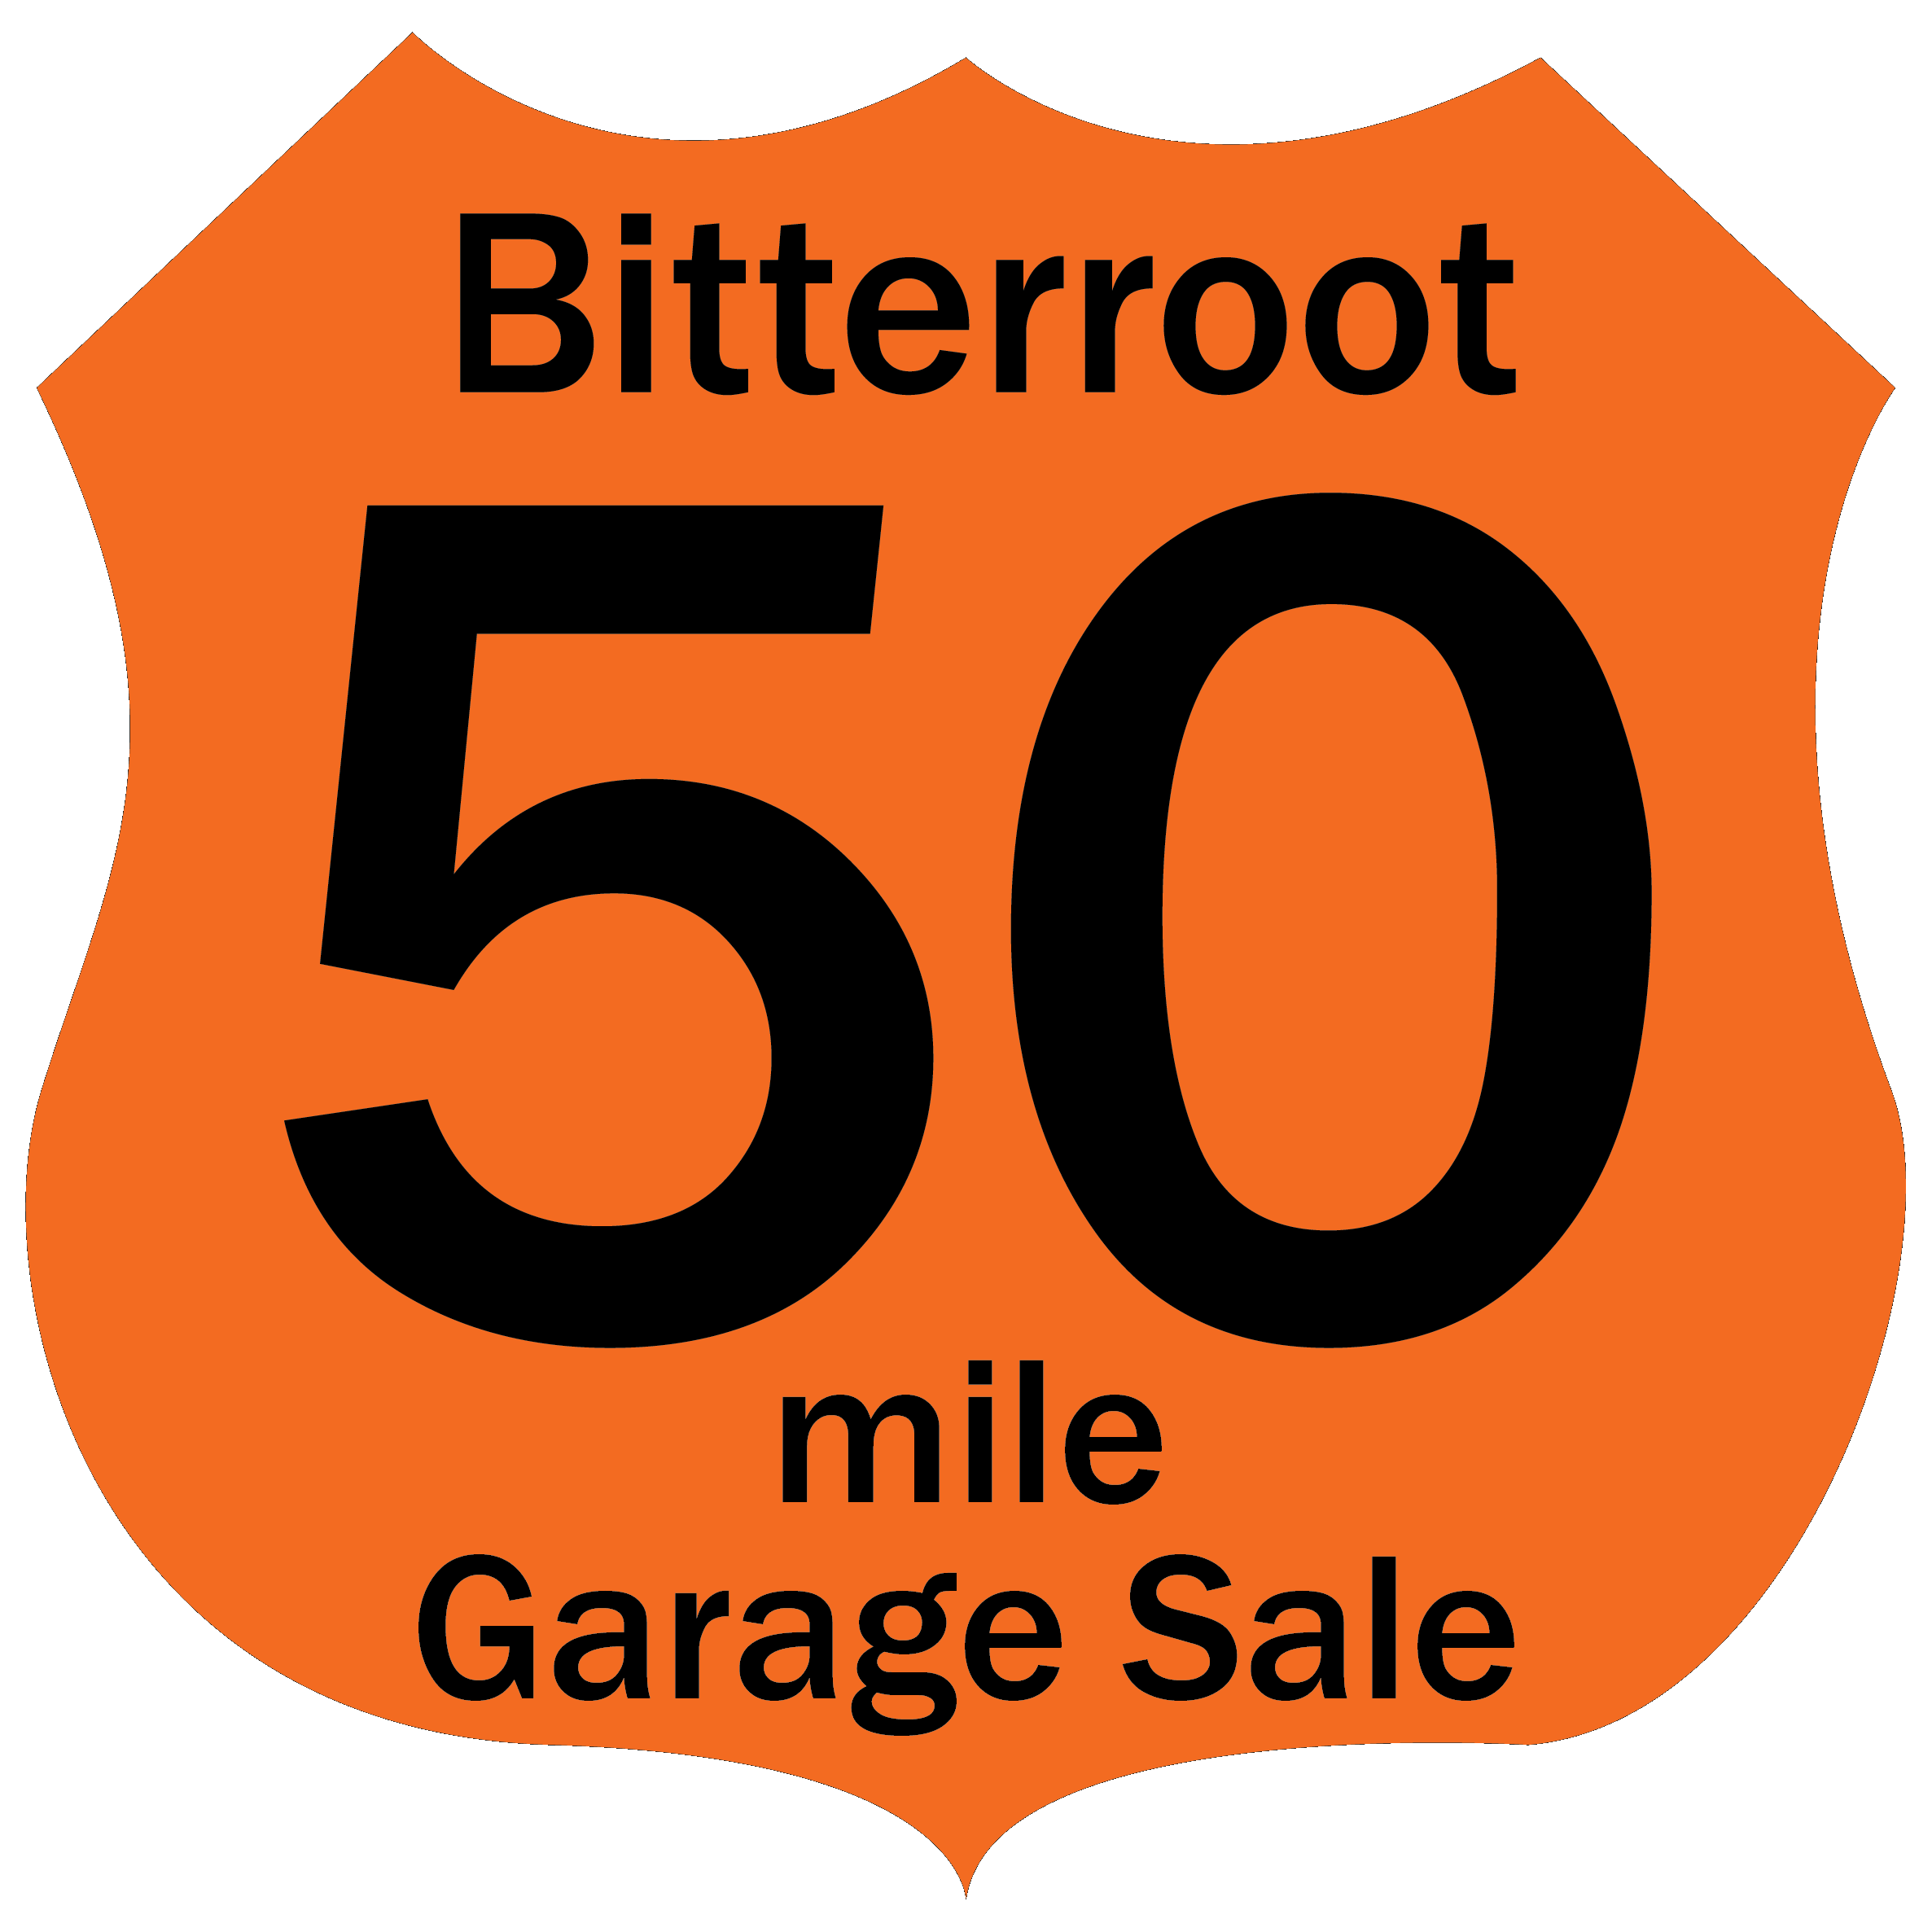 Bitterroot 50 Mile Garage Sale